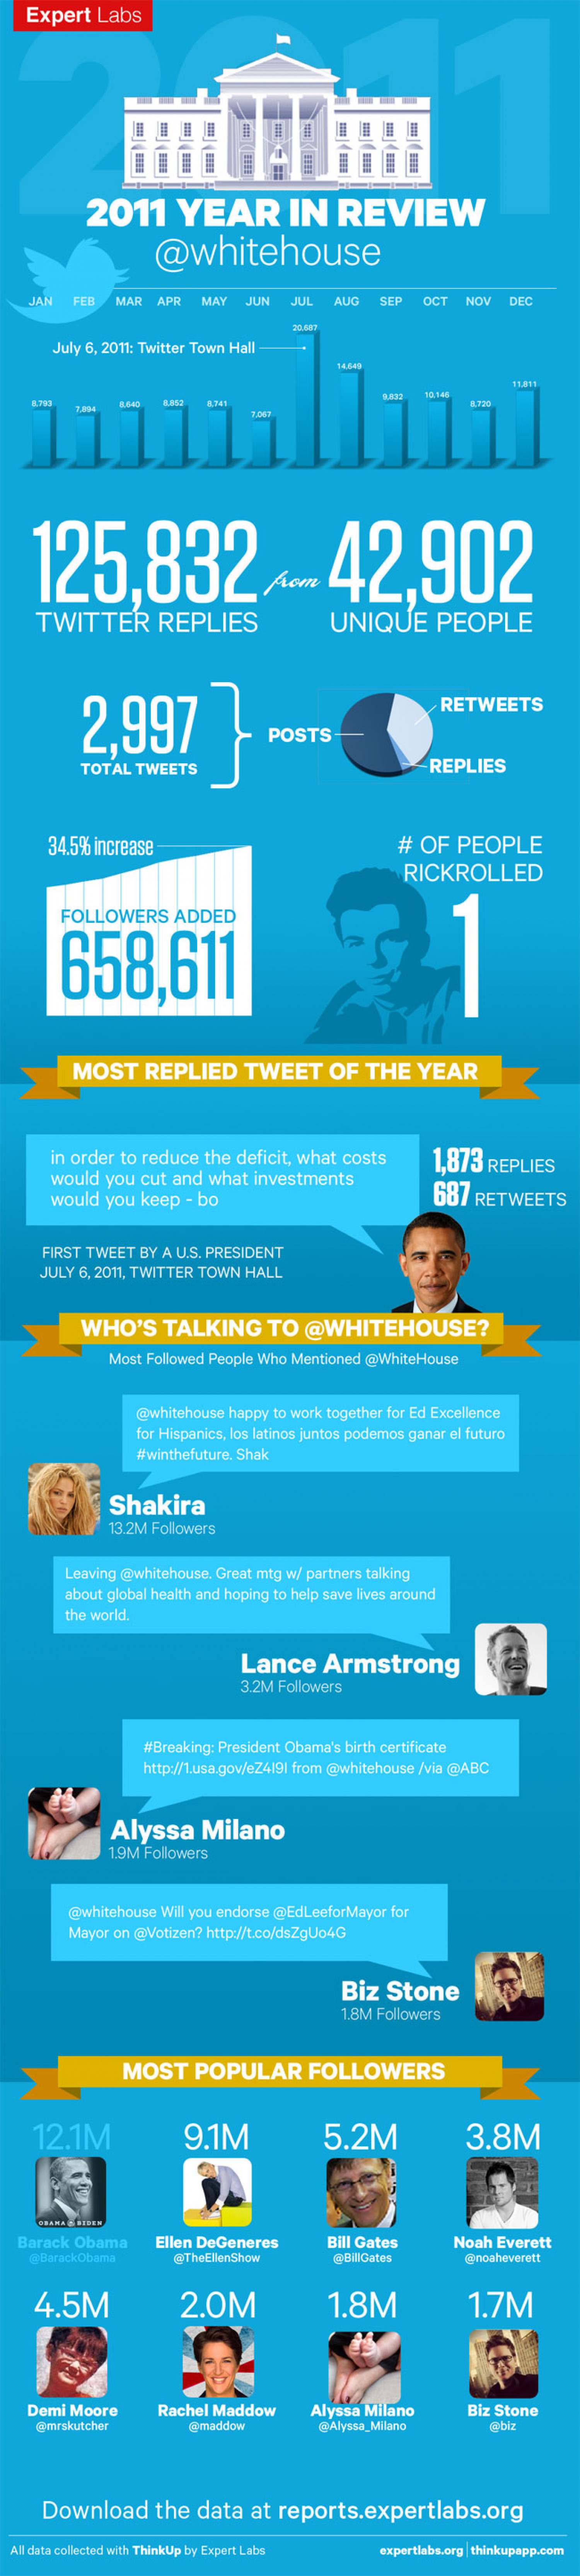 How the White House Drives Engagement on Twitter Without Linkbait Infographic